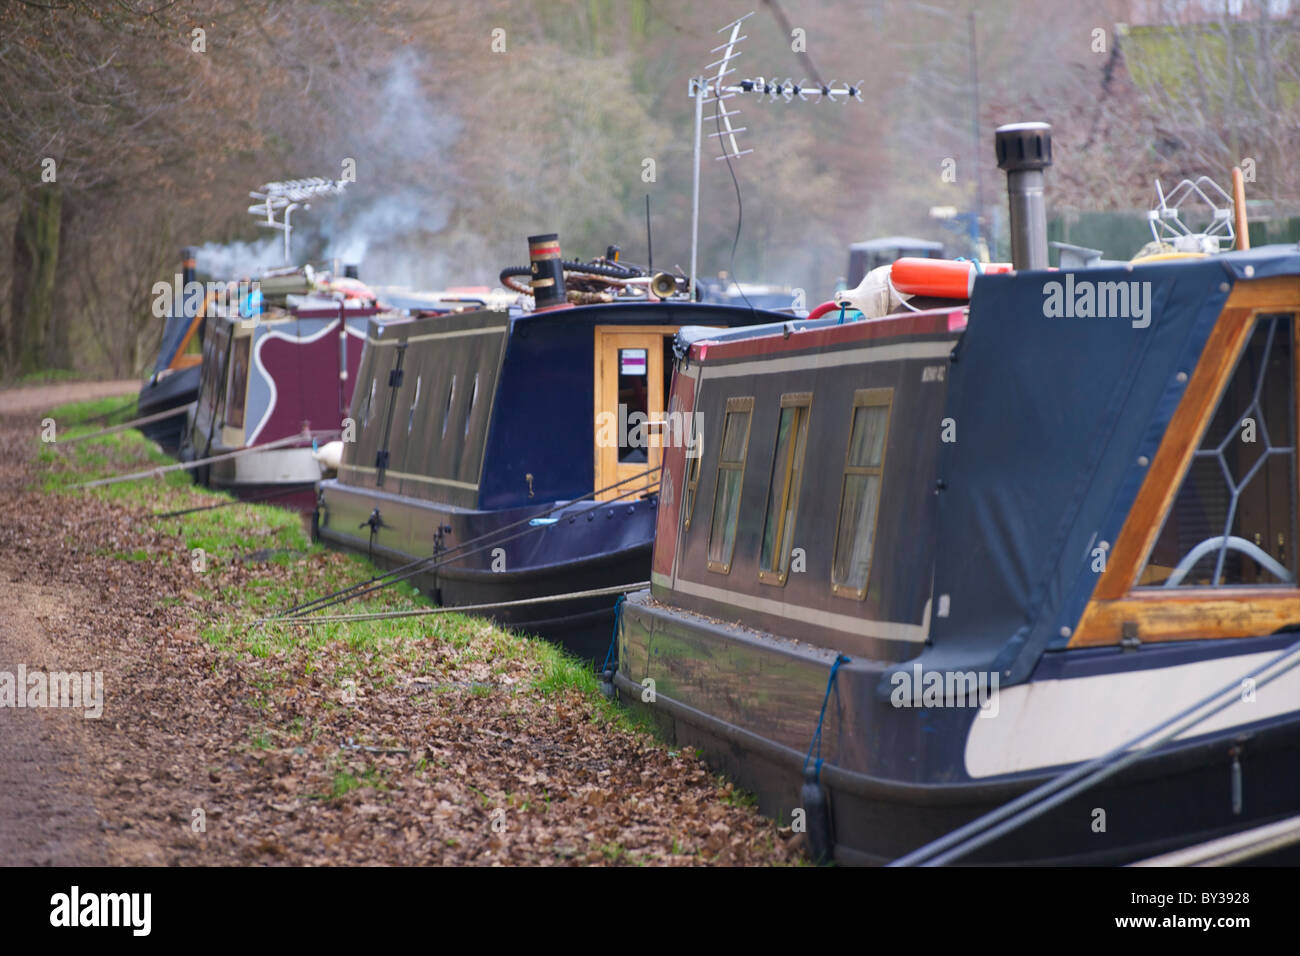 Narrowboats moored on the bank of Oxford canal. - Stock Image